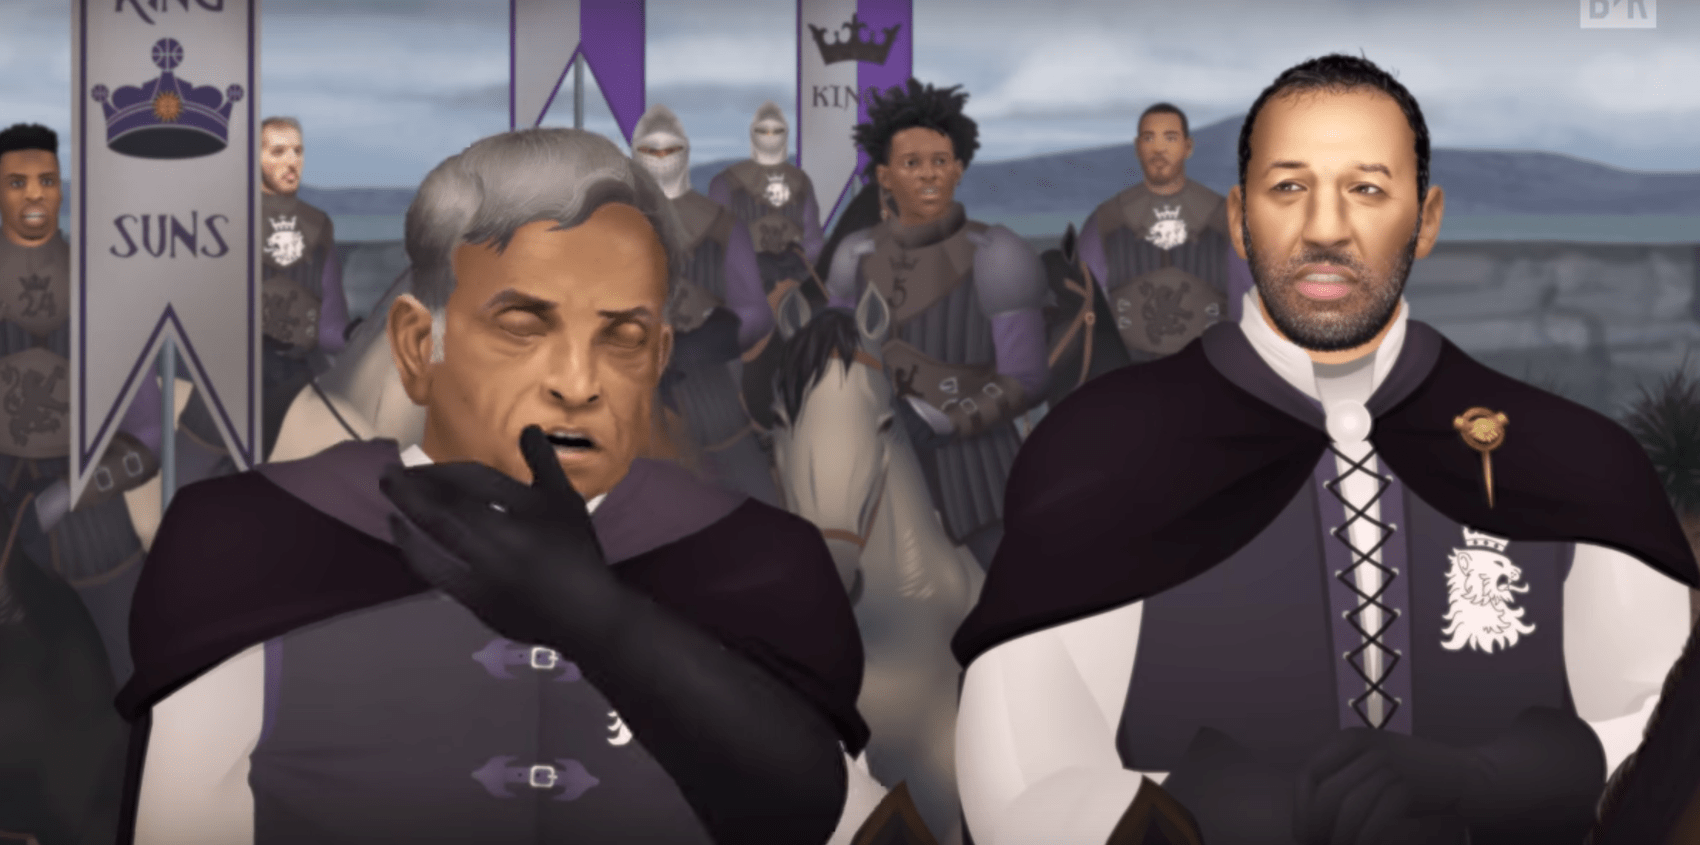 Game of Zones : l'alliance improbable entre les Suns et les Kings !